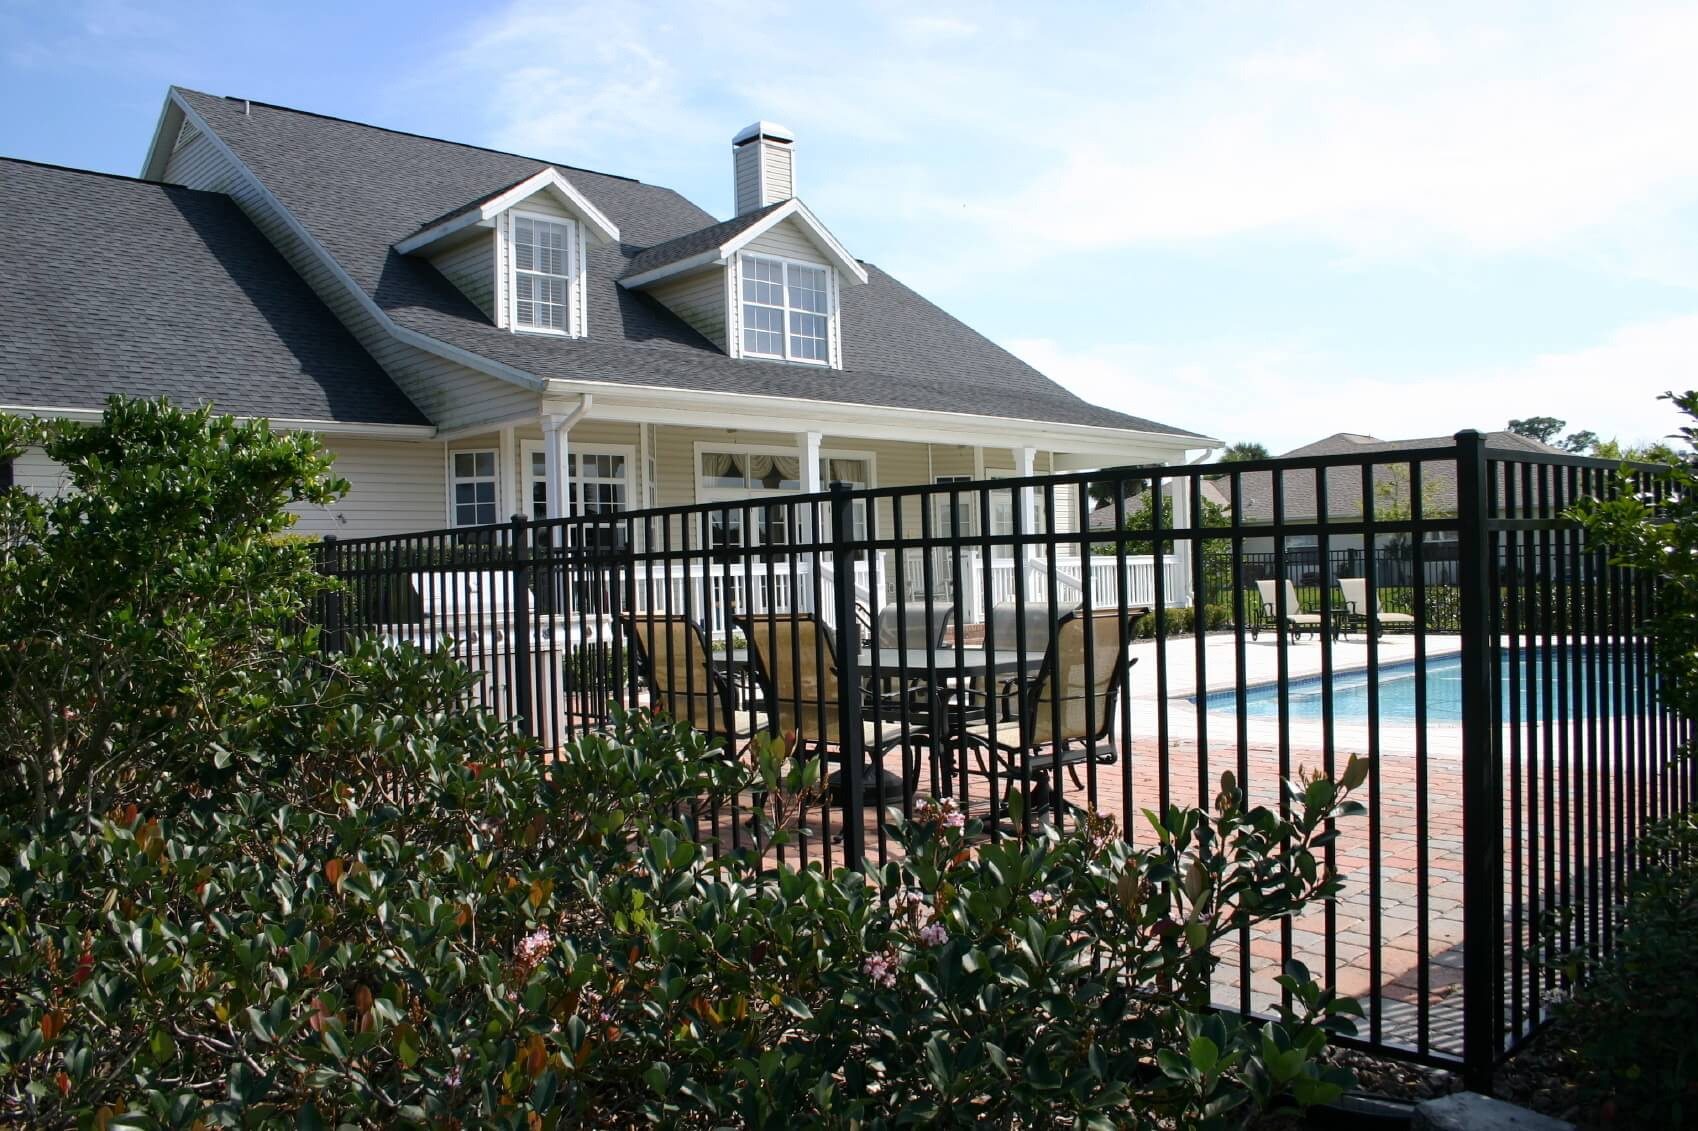 18 Inventive Pool Fence Ideas For Residential Homes in 15 Genius Designs of How to Make Backyard Pool Fence Ideas